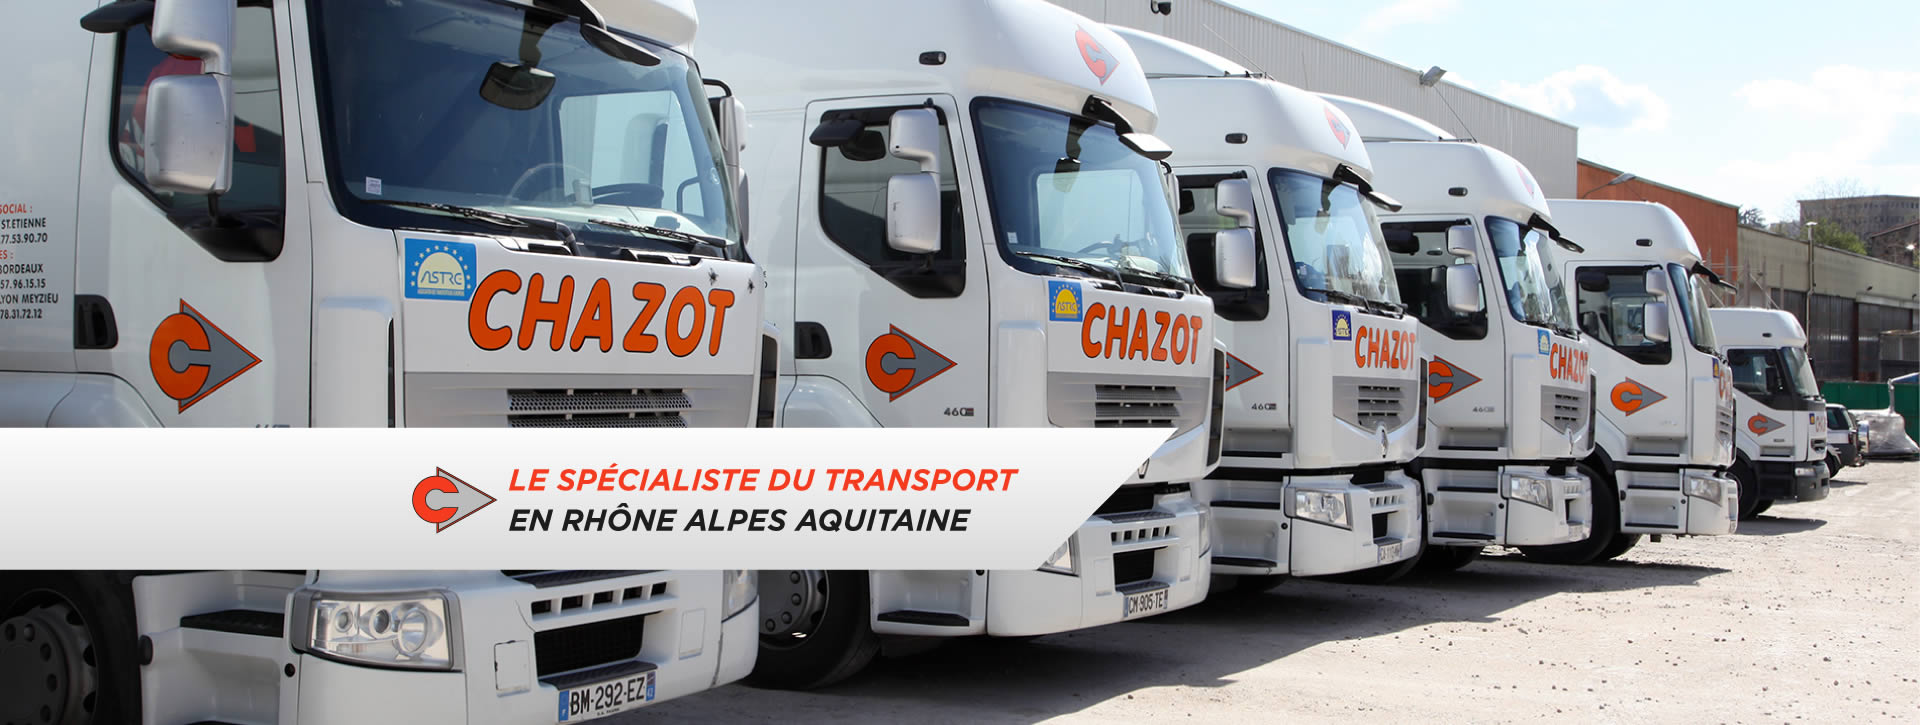 transports chazot le sp cialiste du transport en rh ne alpes aquitaine. Black Bedroom Furniture Sets. Home Design Ideas